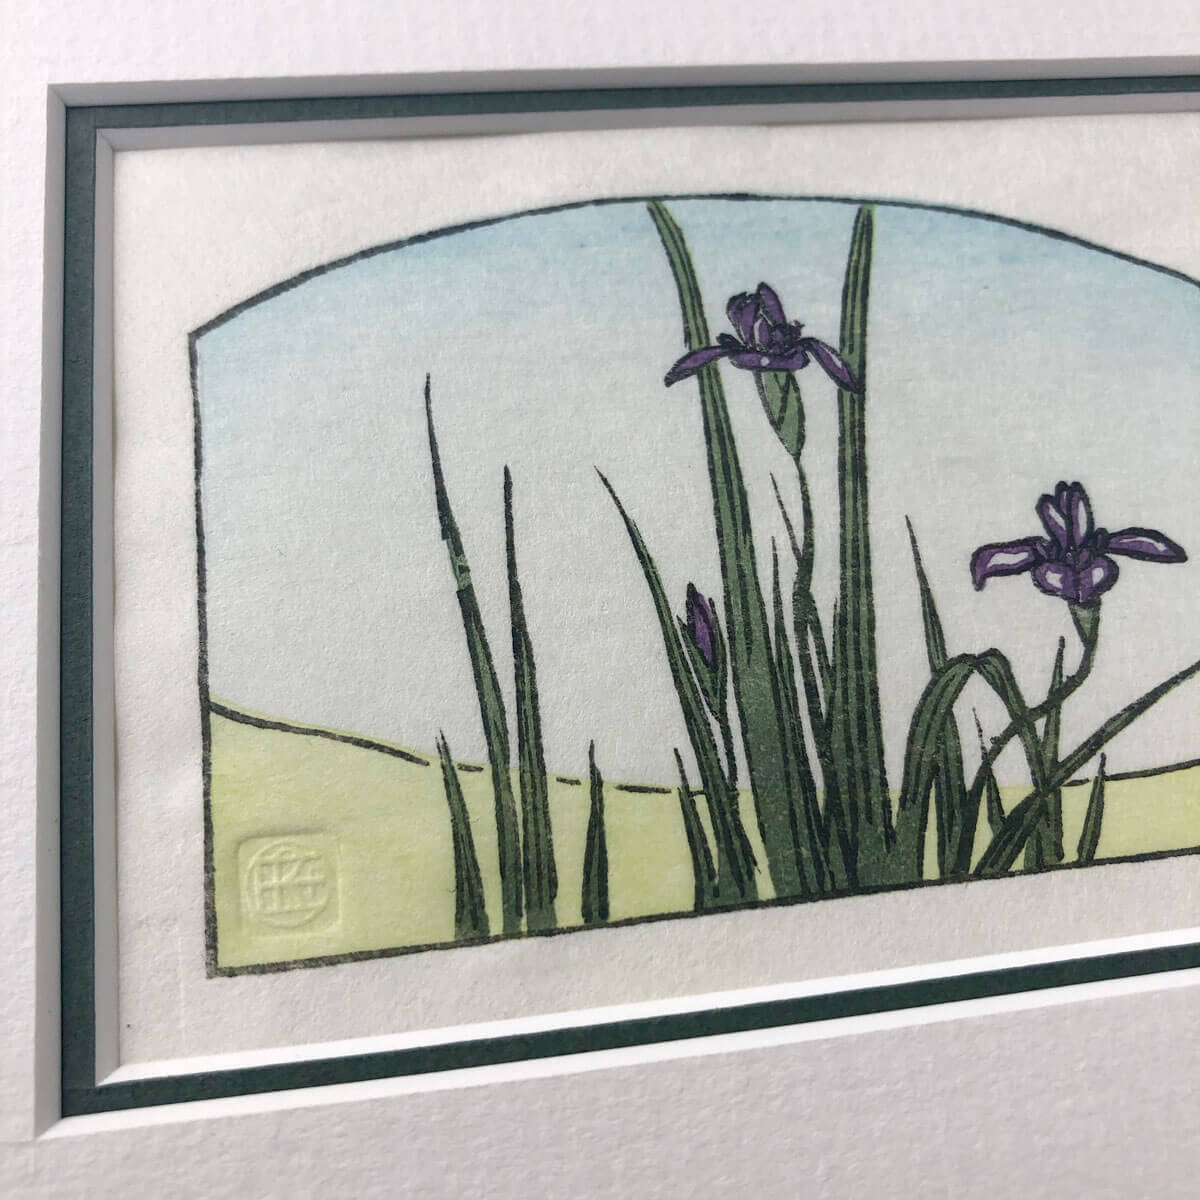 handmade woodblock print of purple iris flowers and foliage with green ground and pale blue sky